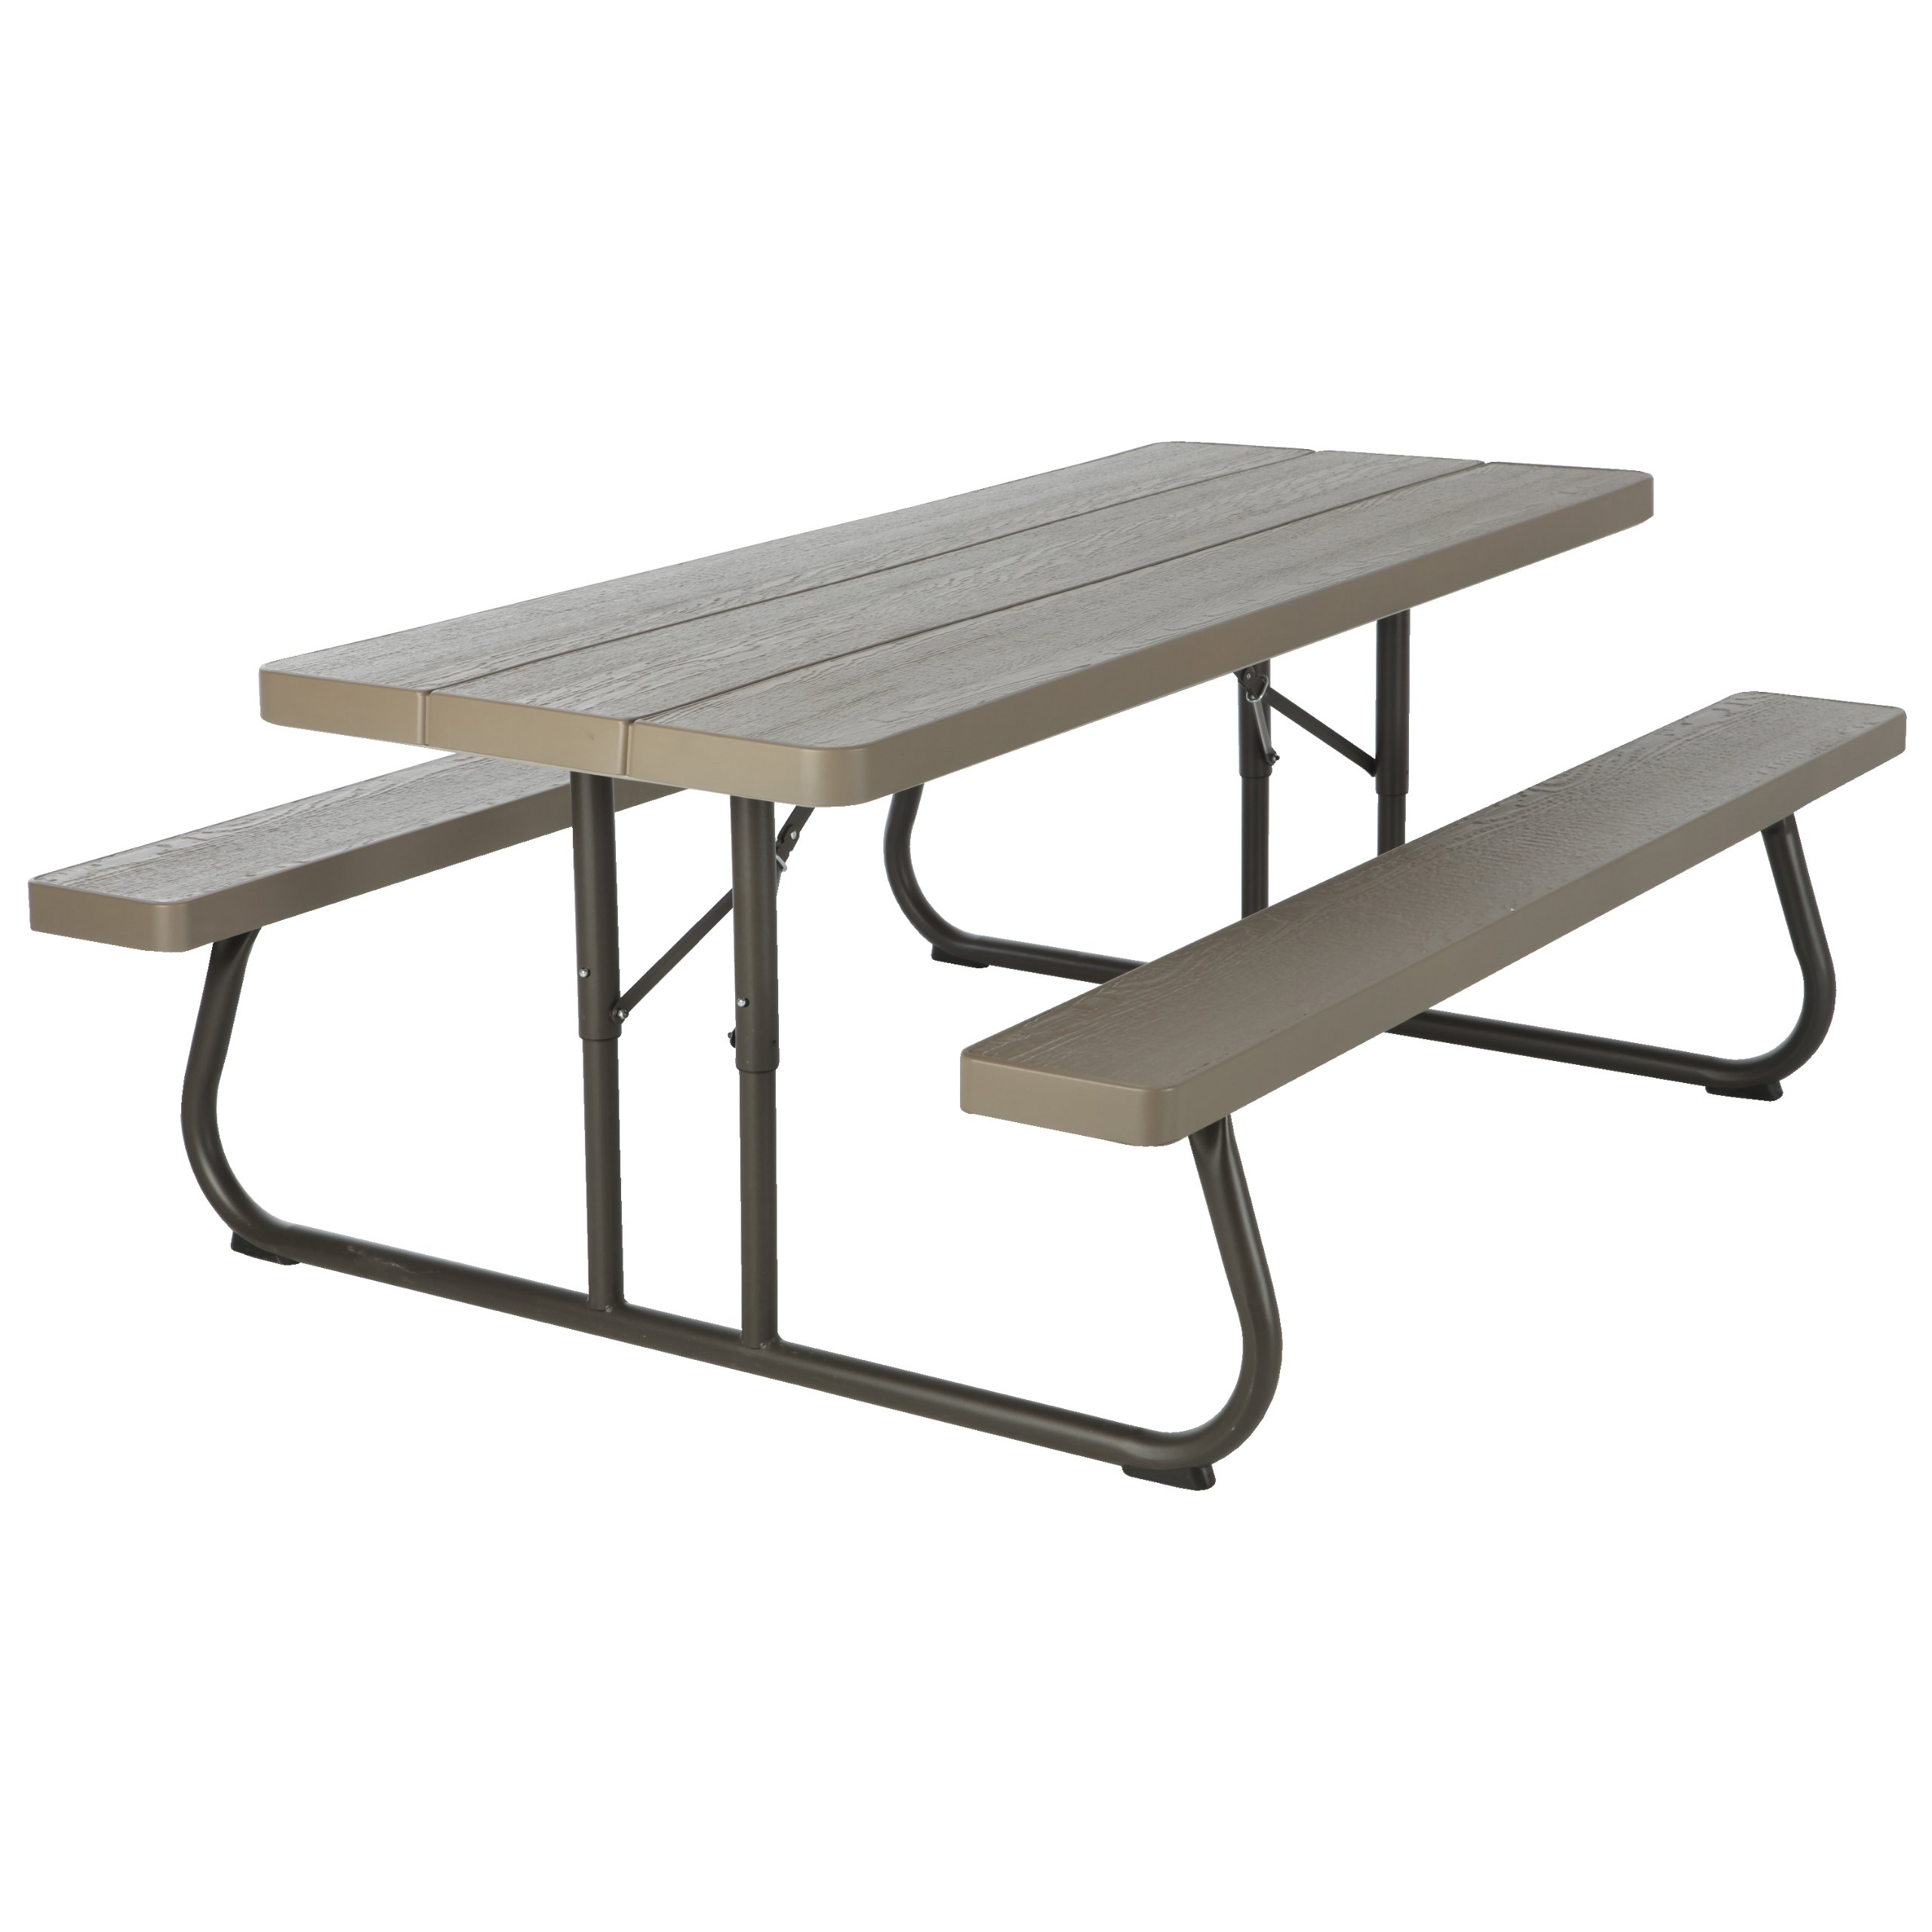 Lifetime  60105  Wood Grain Picnic Table and Benches, 6 Feet, Brown by Lifetime